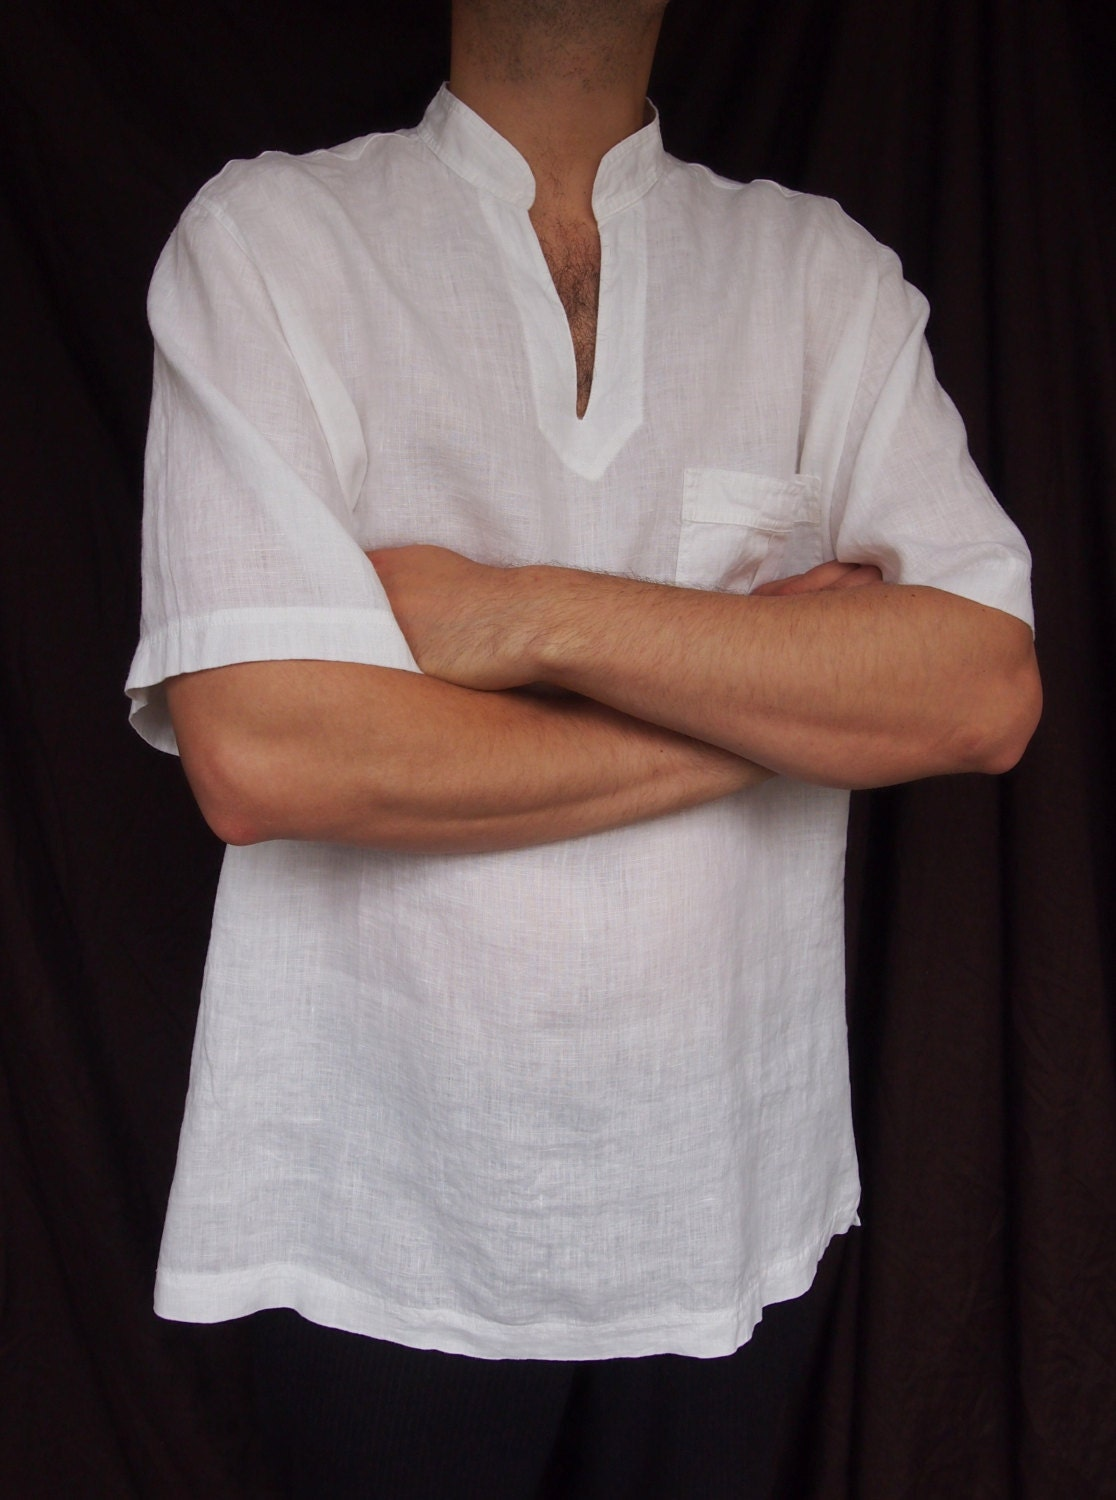 Find great deals on eBay for mens white linen shirt. Shop with confidence.